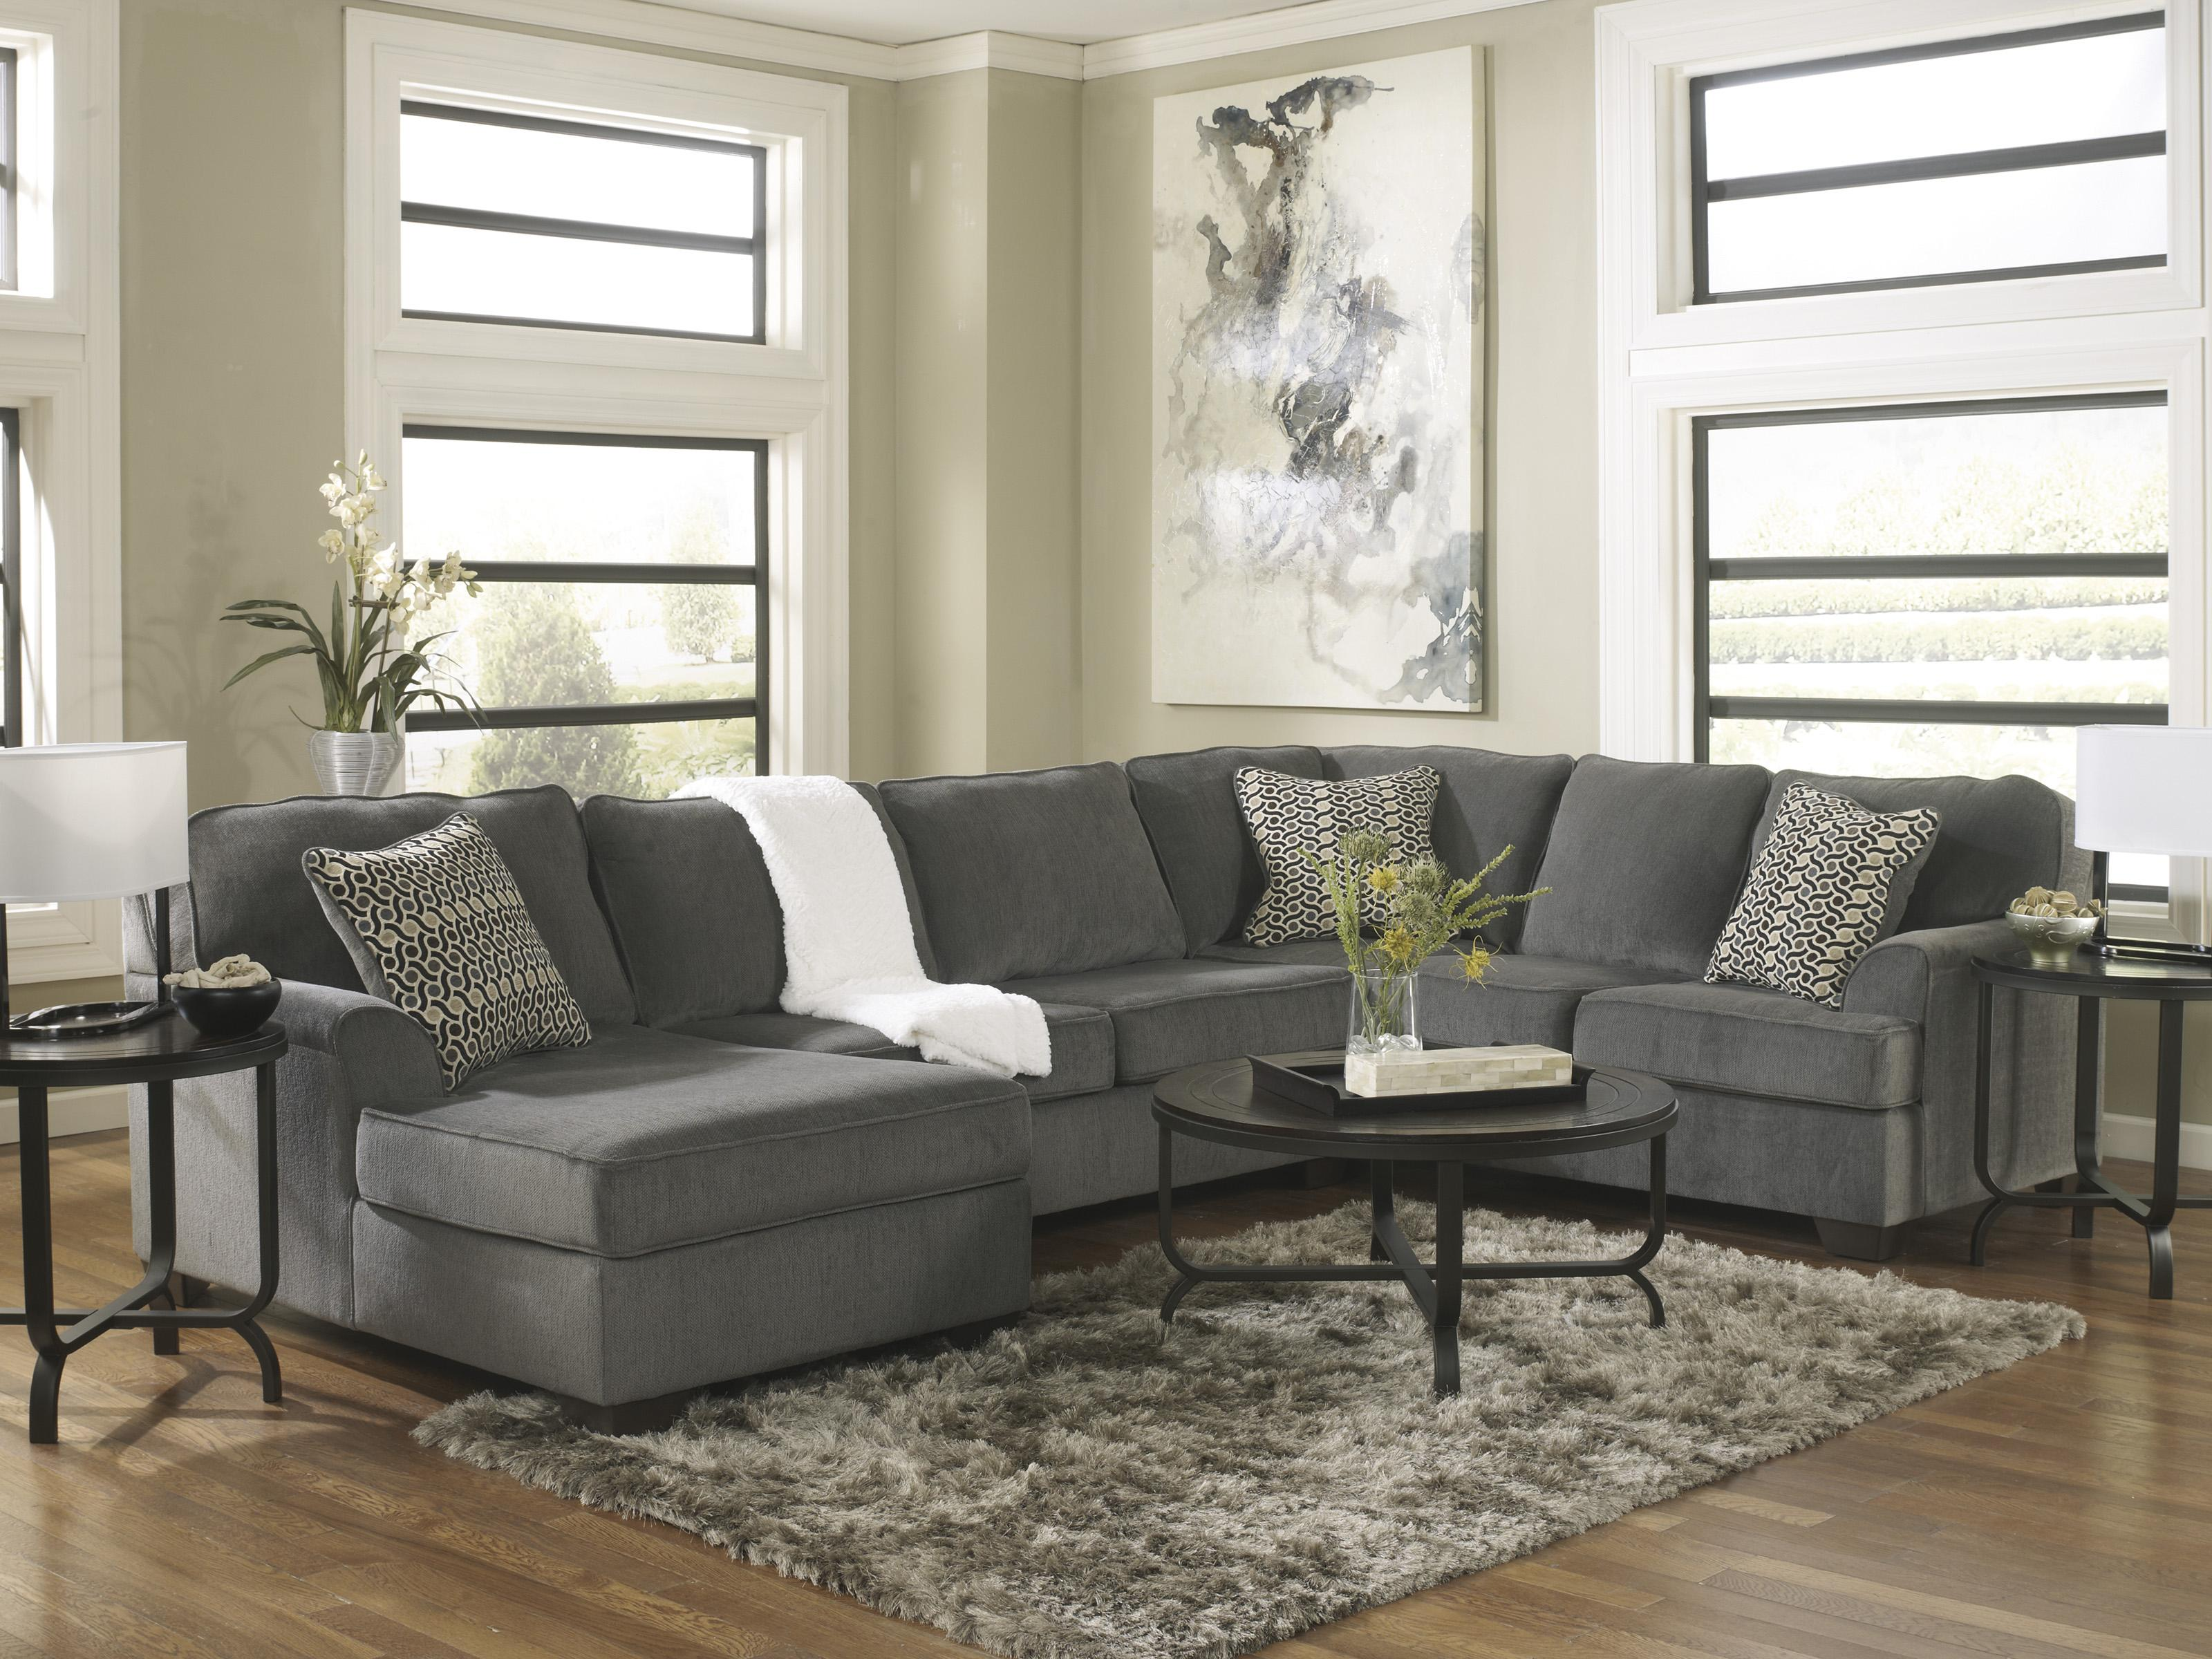 Ashley Furniture Loric Smoke Contemporary 3 Piece Sectional With Left Chaise Colder 39 S